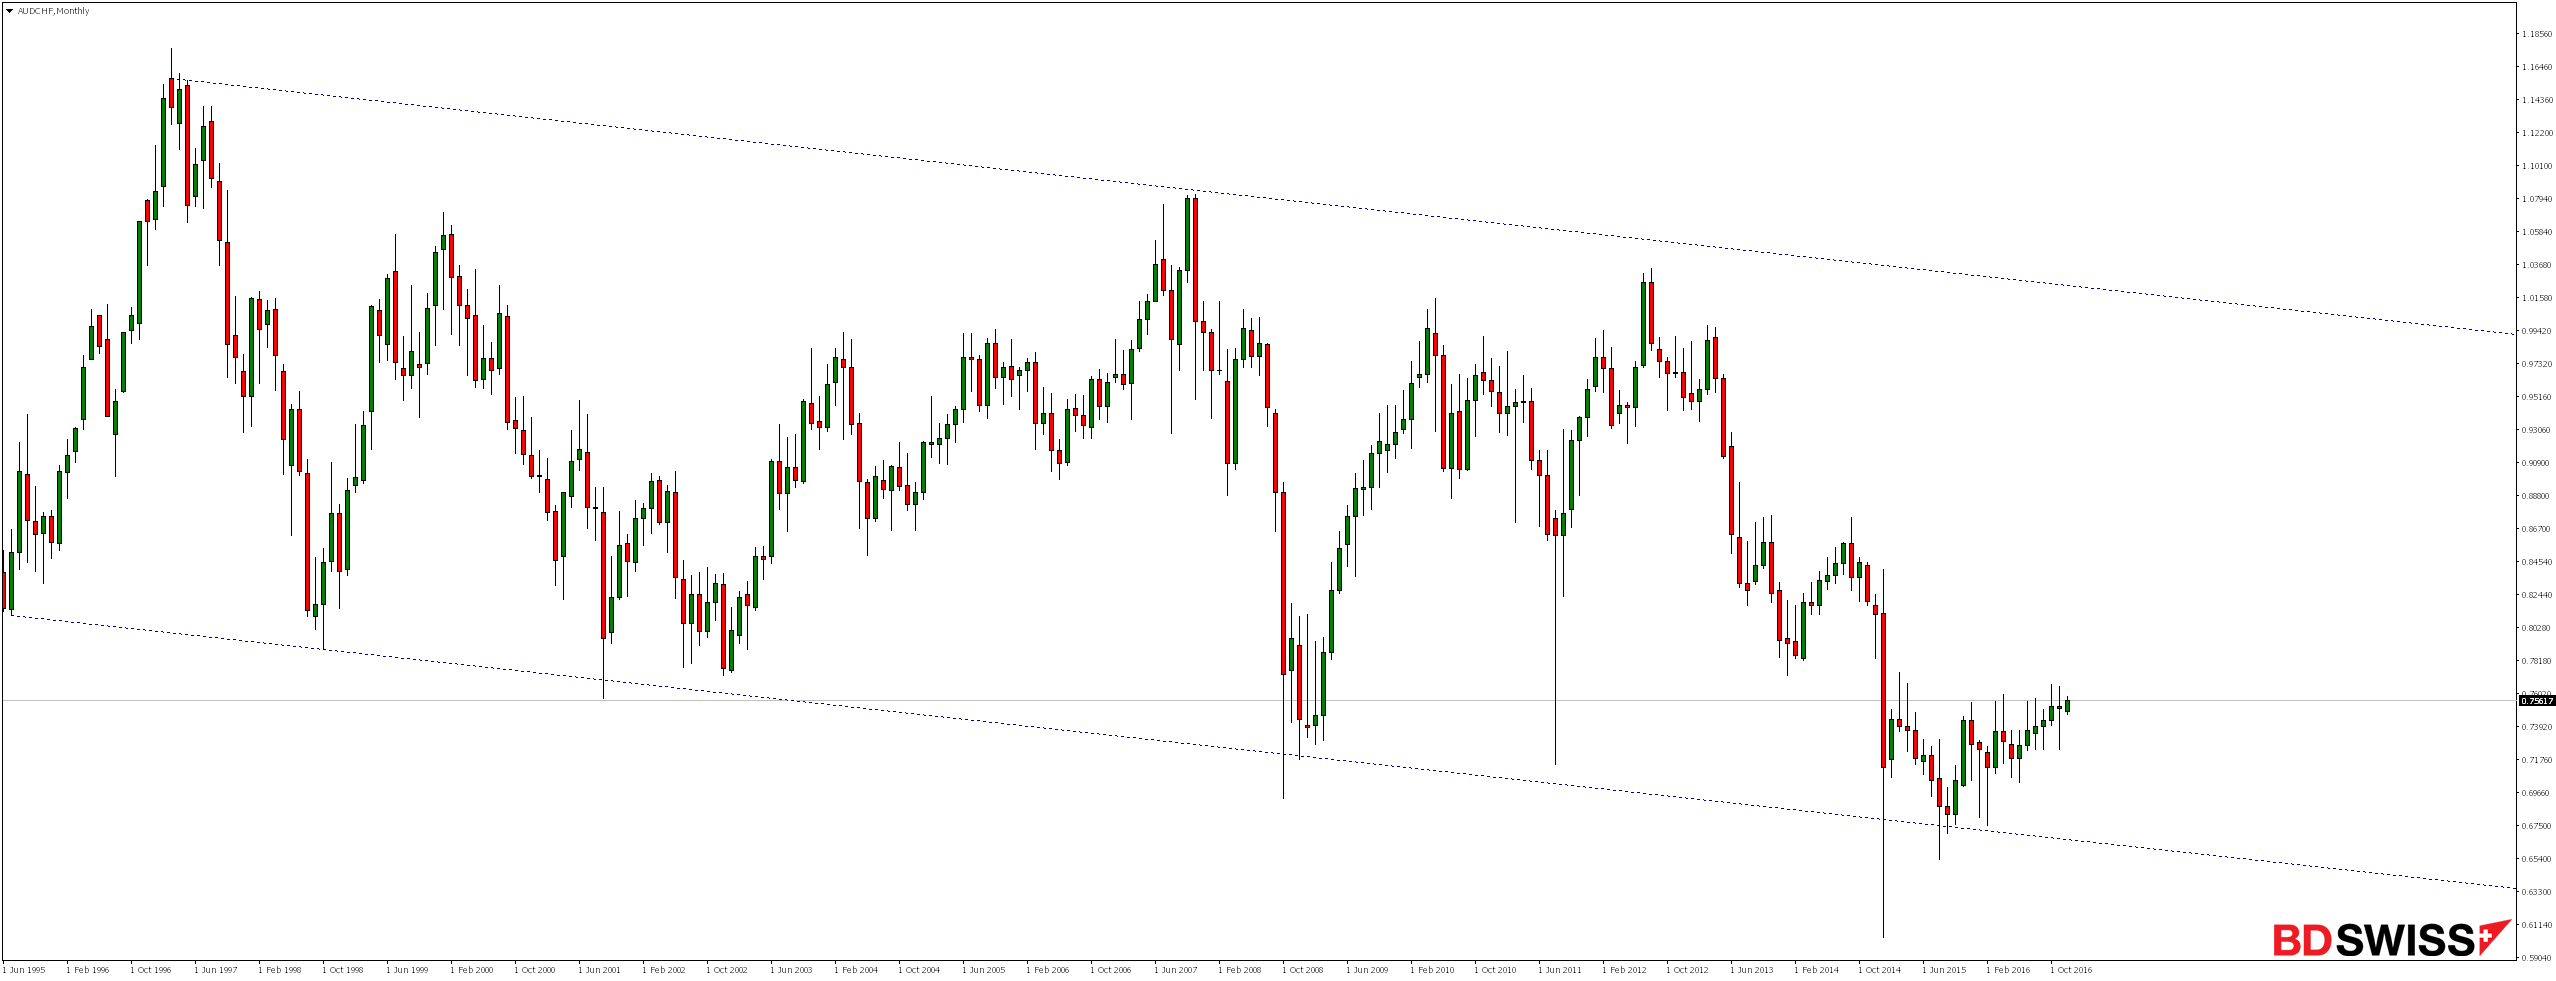 AUDCHF Monthly